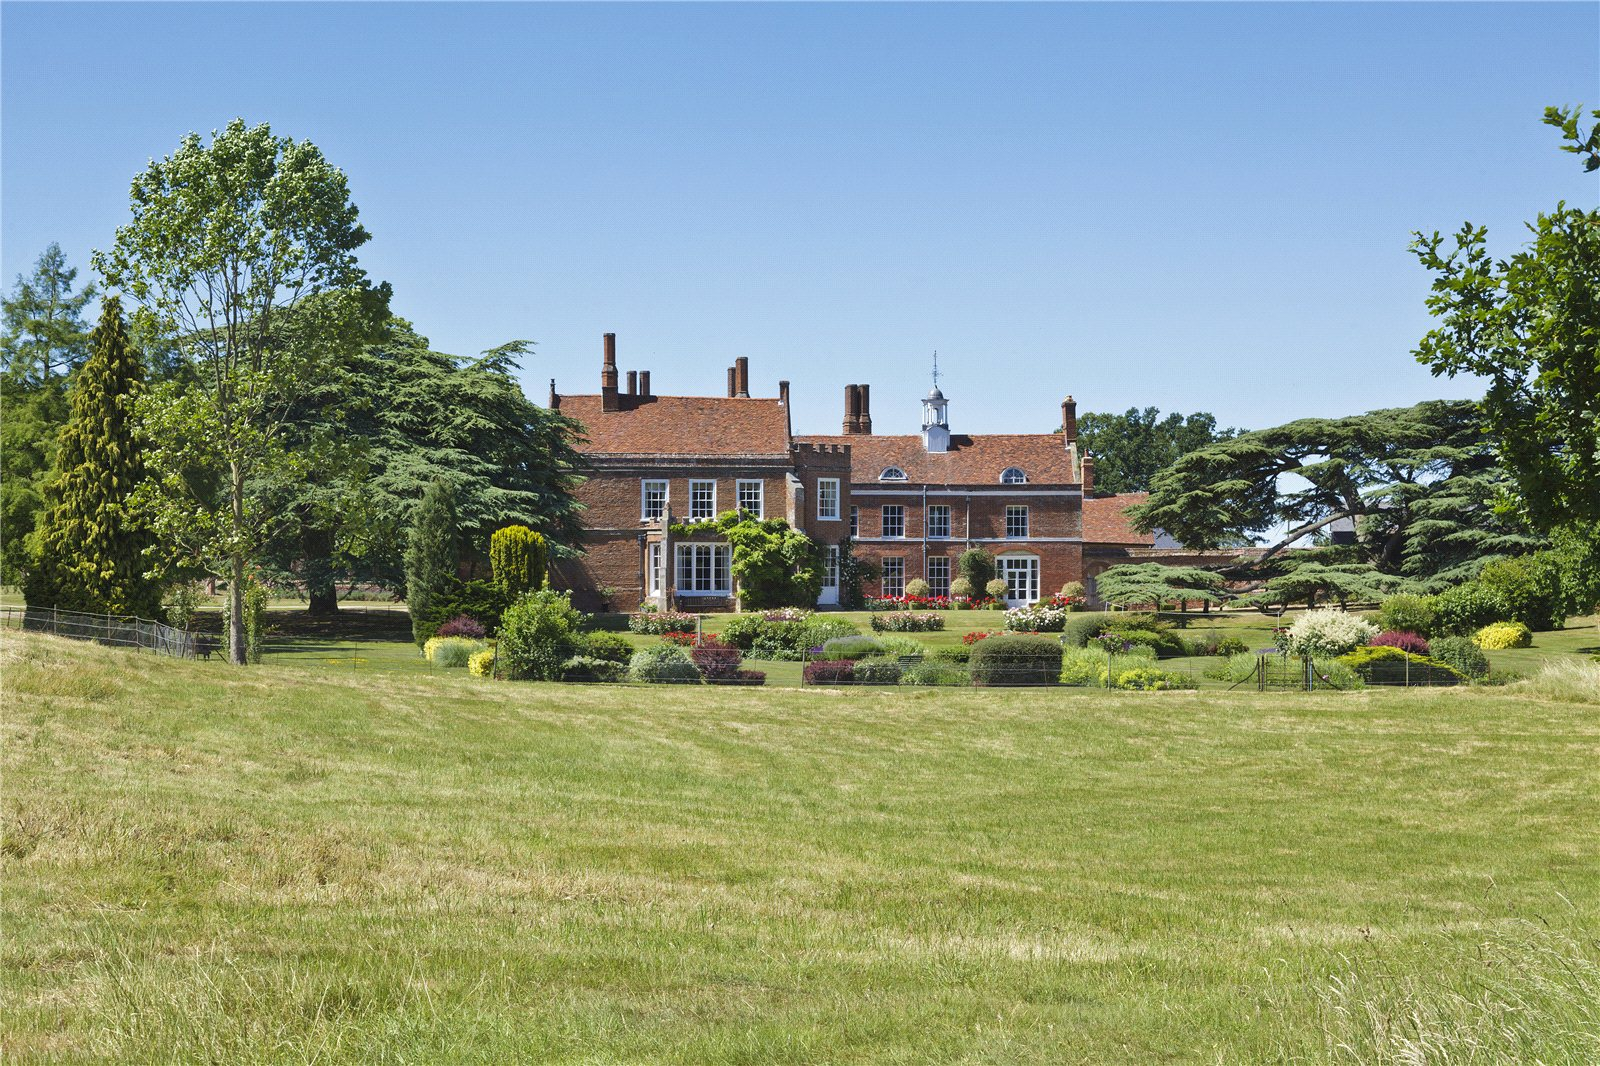 Casa Unifamiliar por un Venta en Spains Hall Road, Finchingfield, Braintree, Essex, CM7 Braintree, Inglaterra